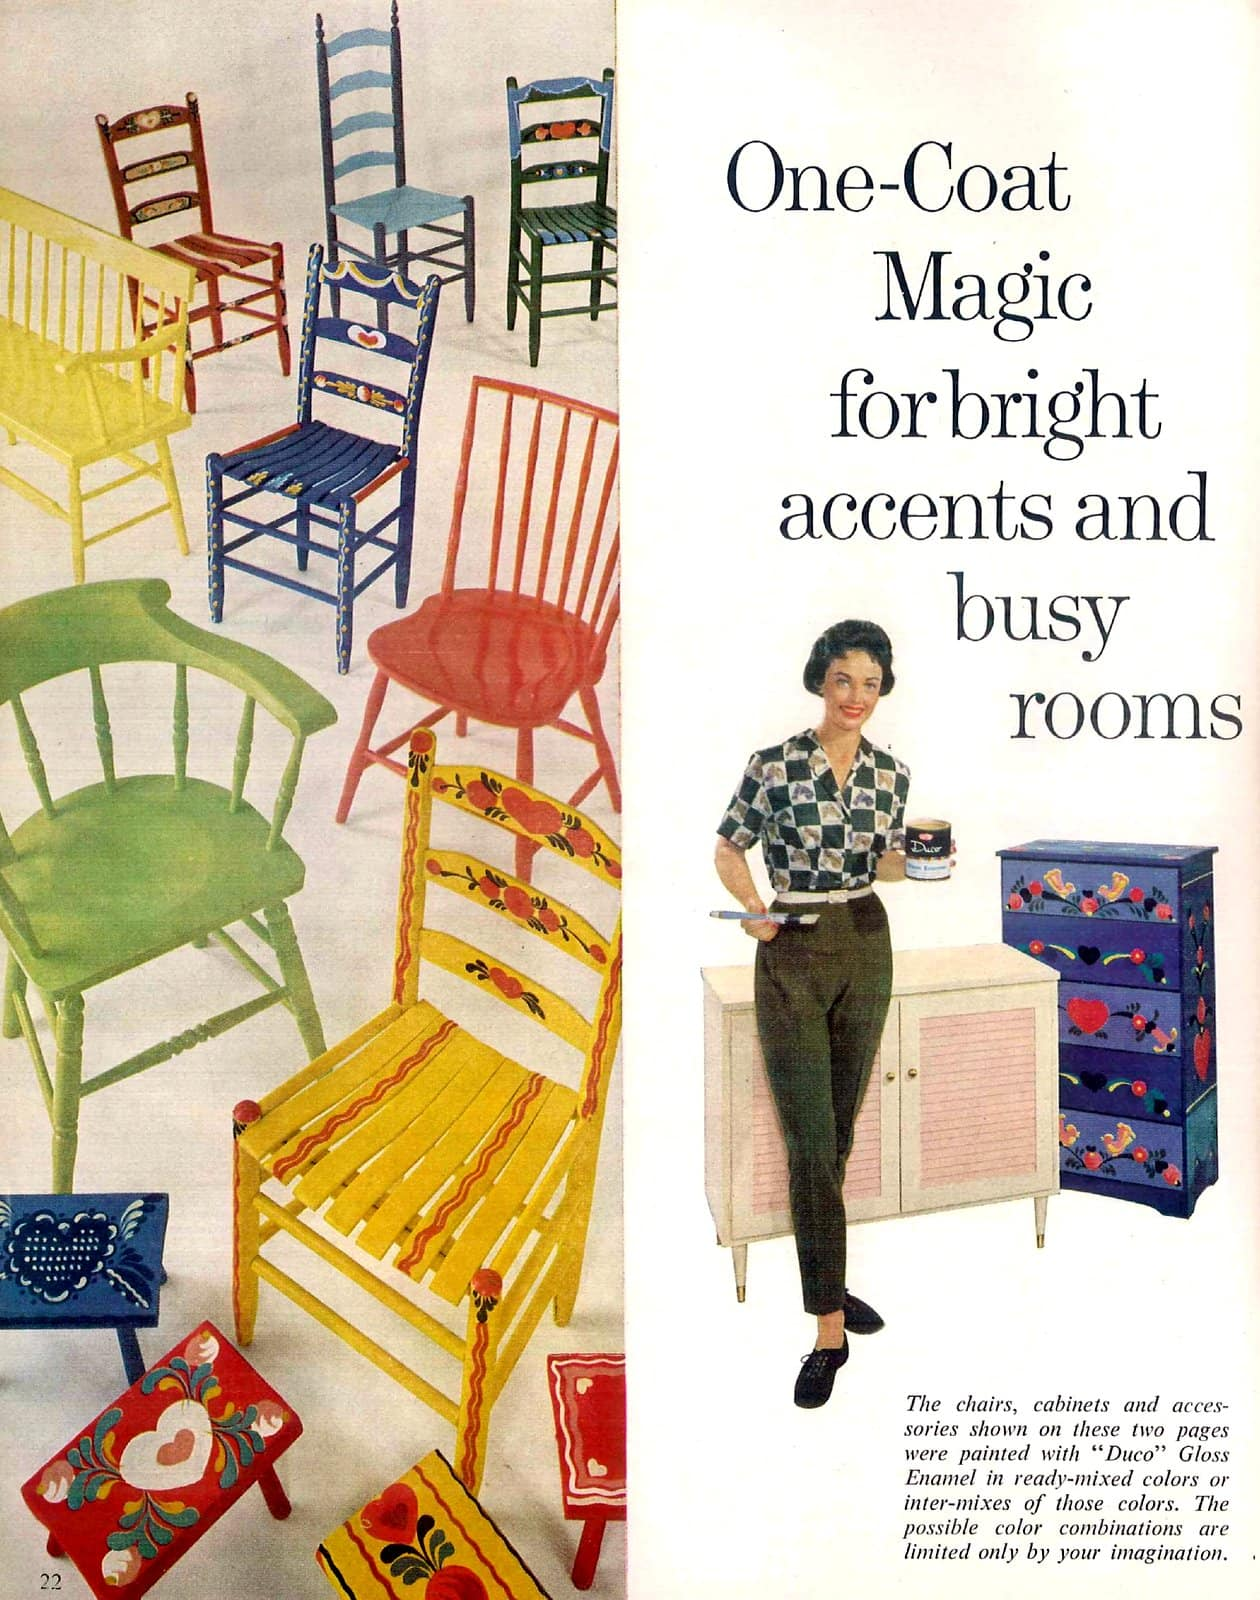 Vintage folk art-style painted chairs (1960s)